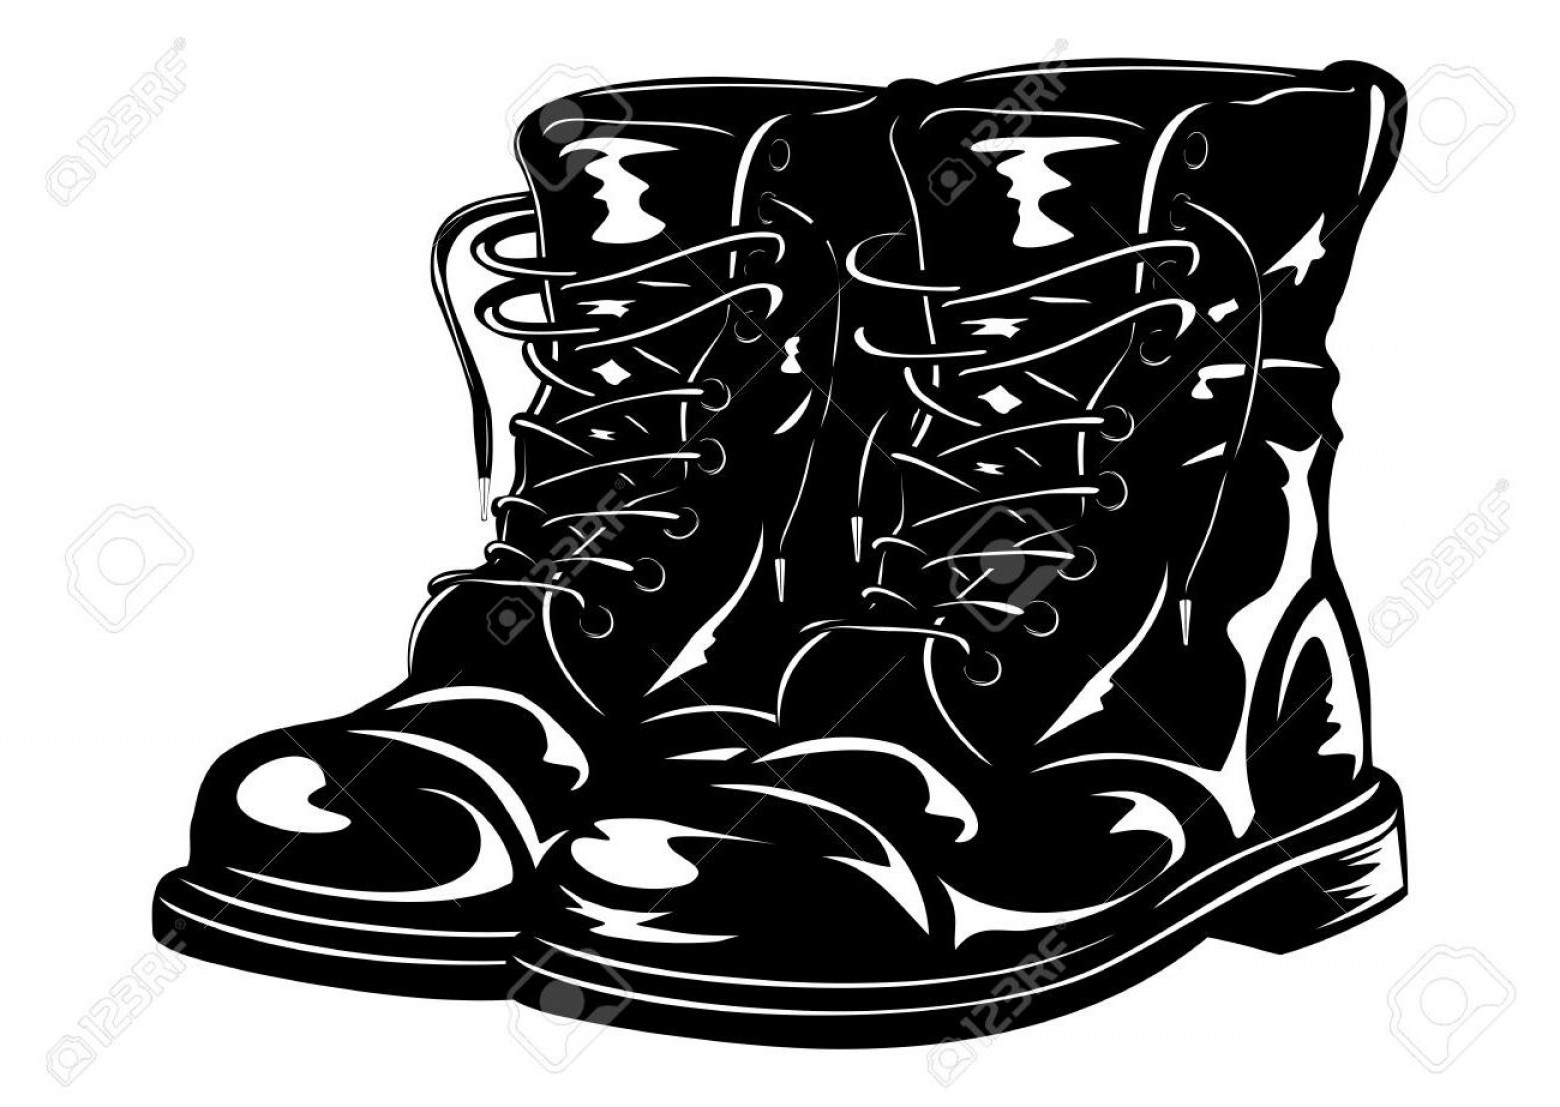 Combat Boots Clipart Black And White.